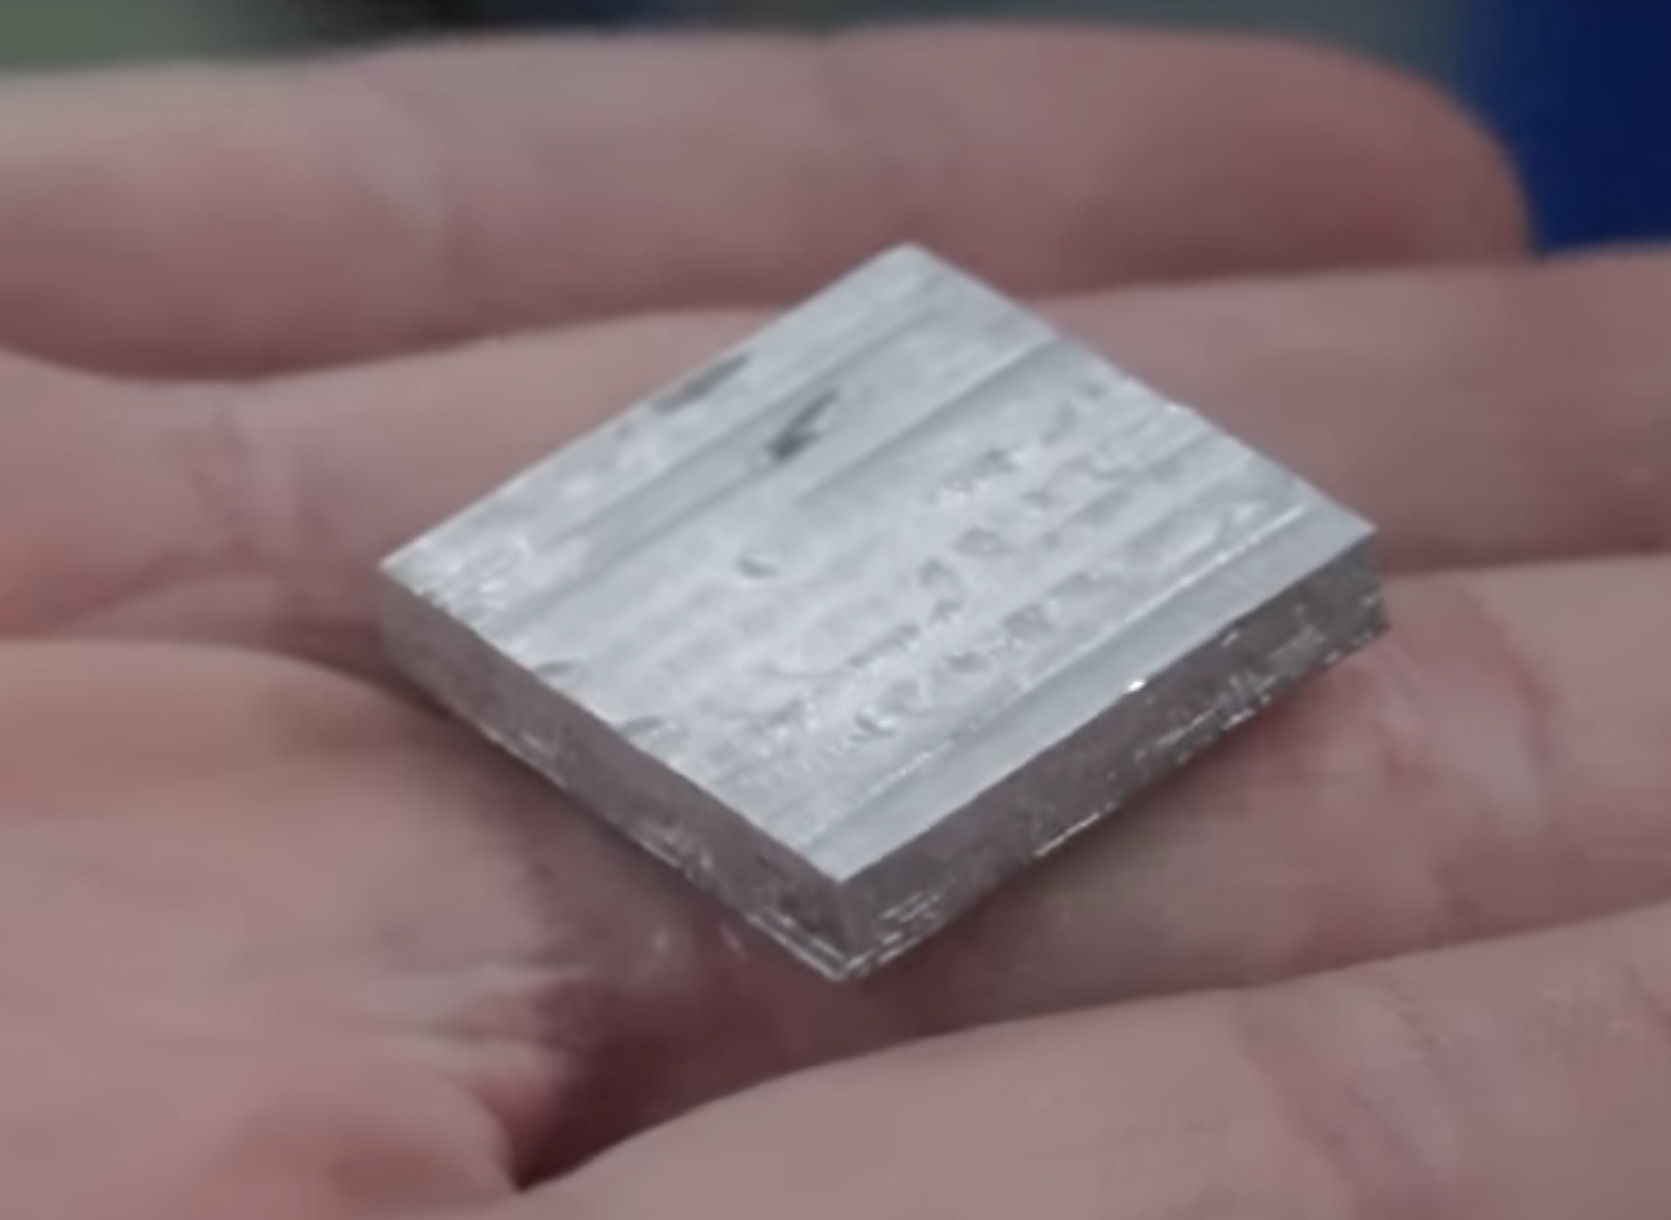 A 3D printed metal sample from the Ability3D device. Note the crisp edges